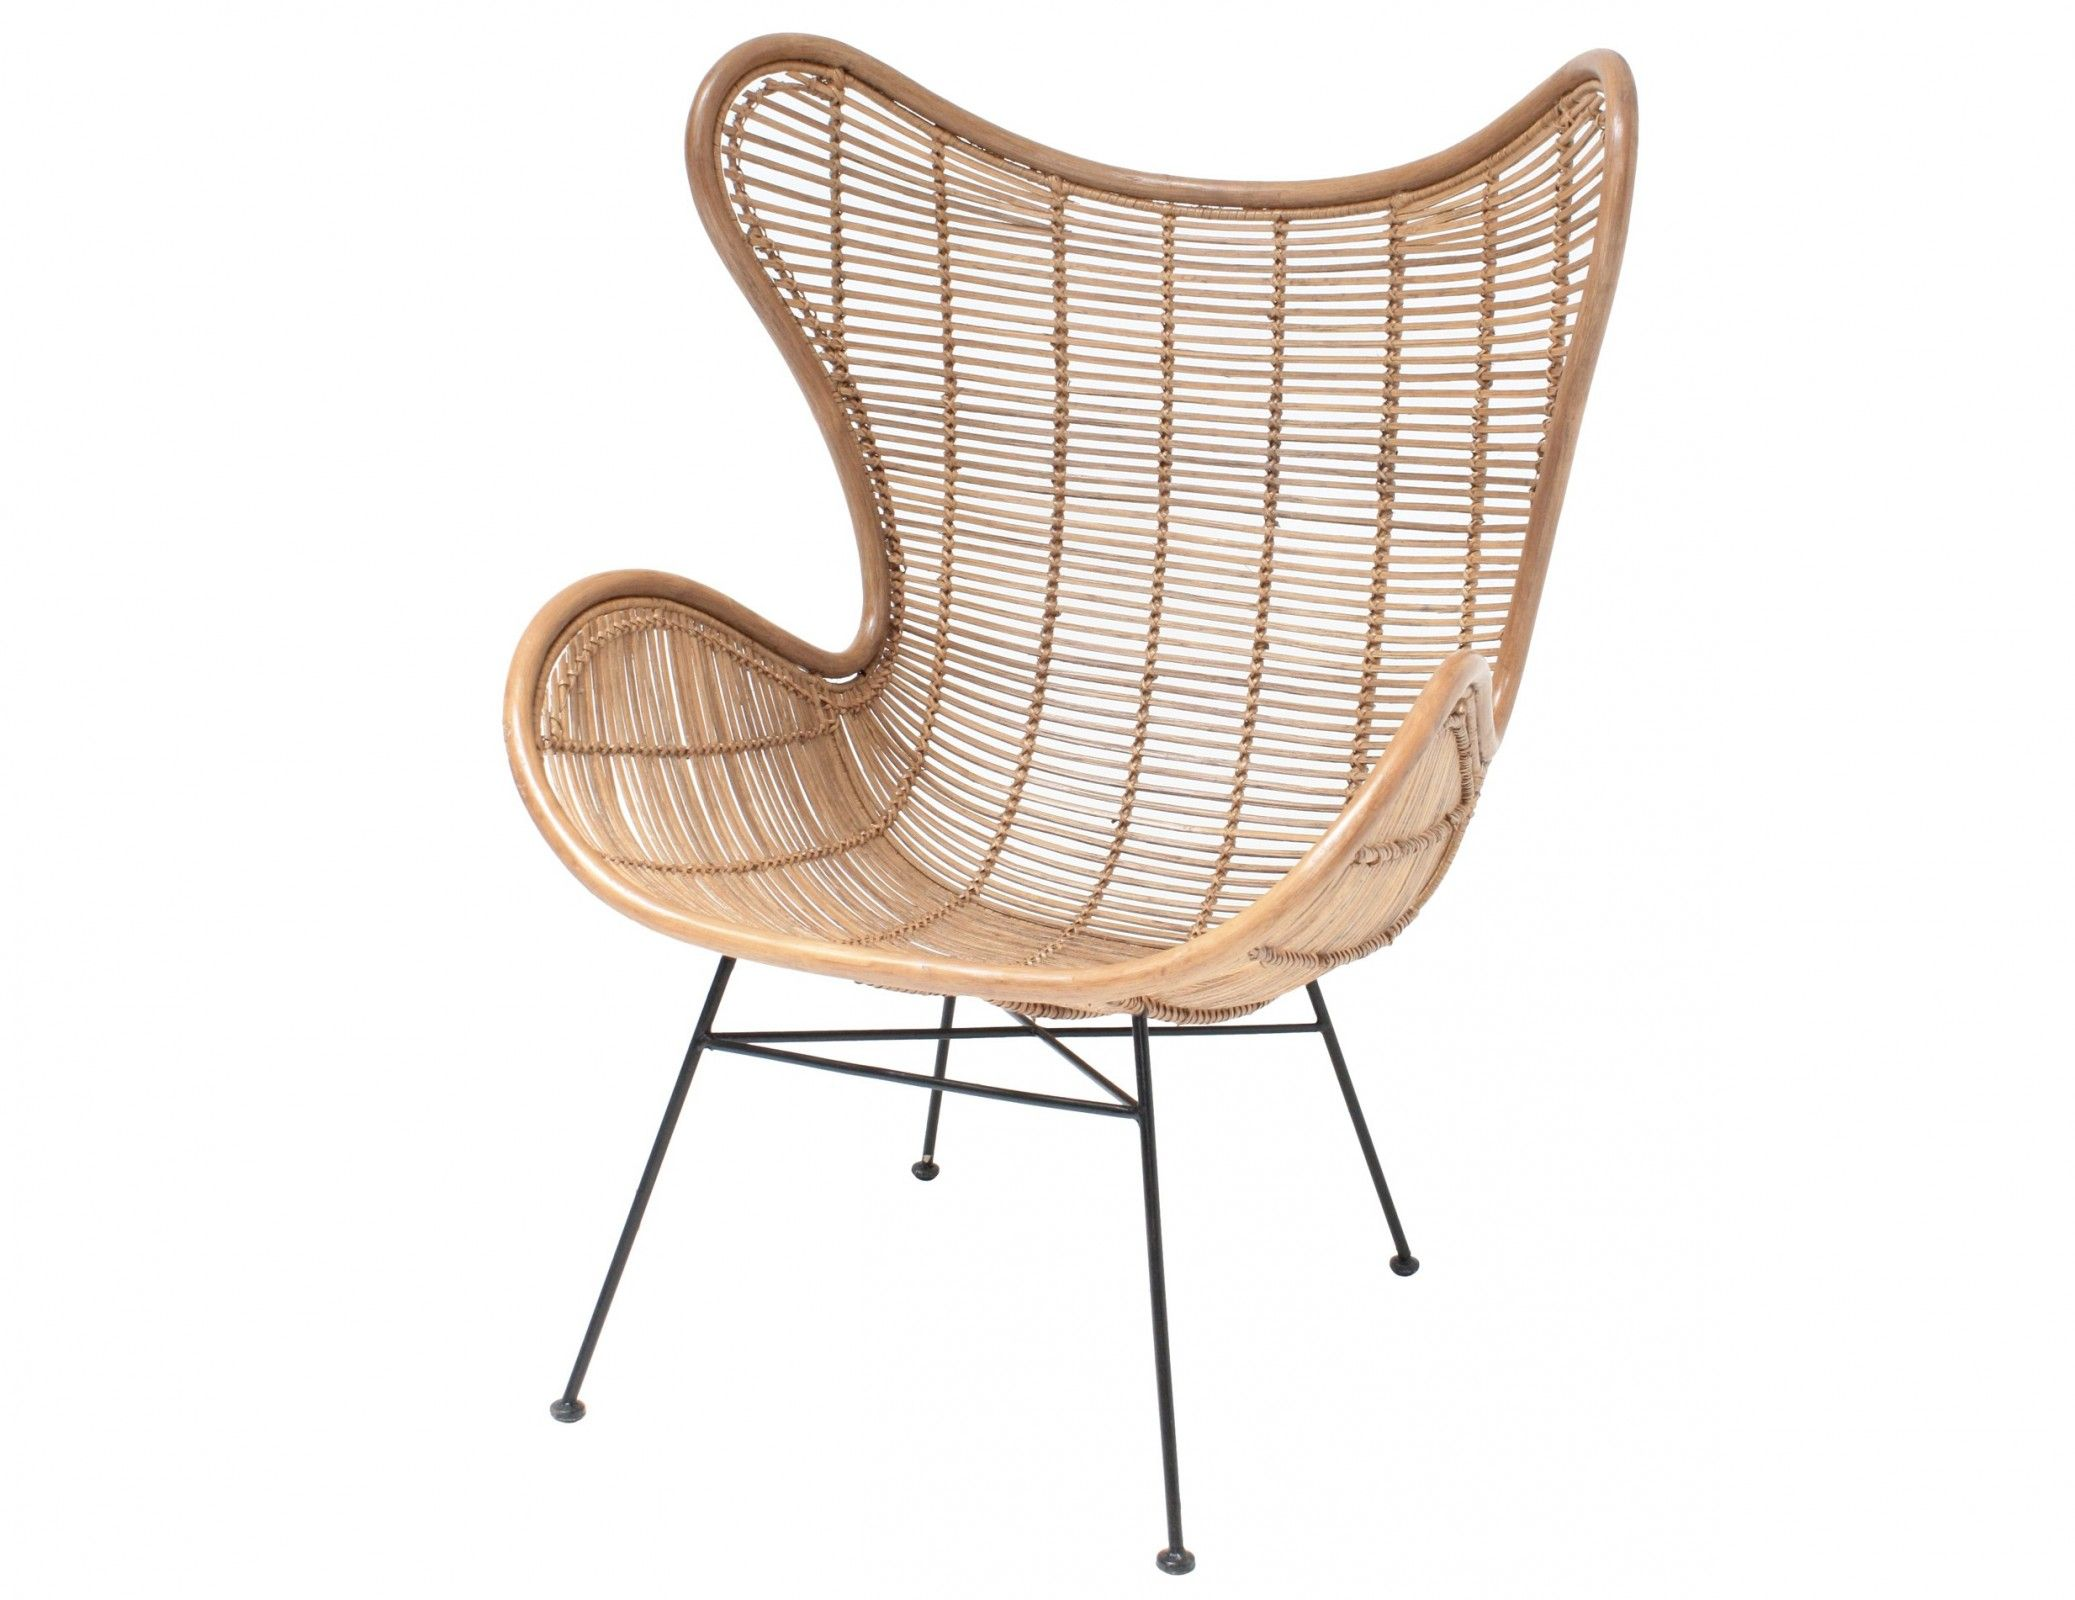 Egg Sessel Sessel Egg Chair. Egg Chair Arne Jacobsen Groartig